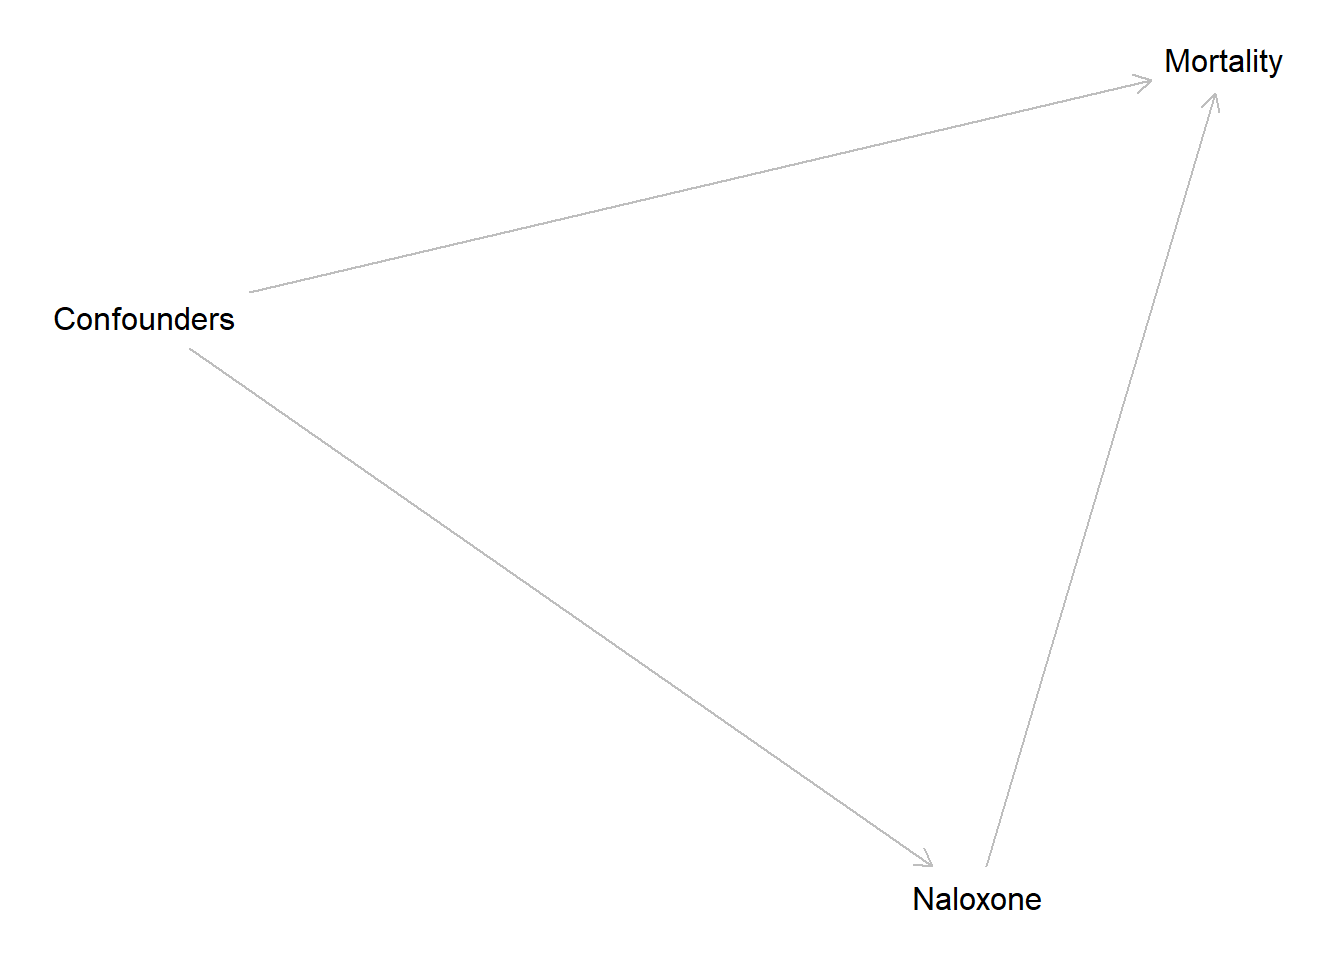 Relationship between confounders, naloxone and mortality